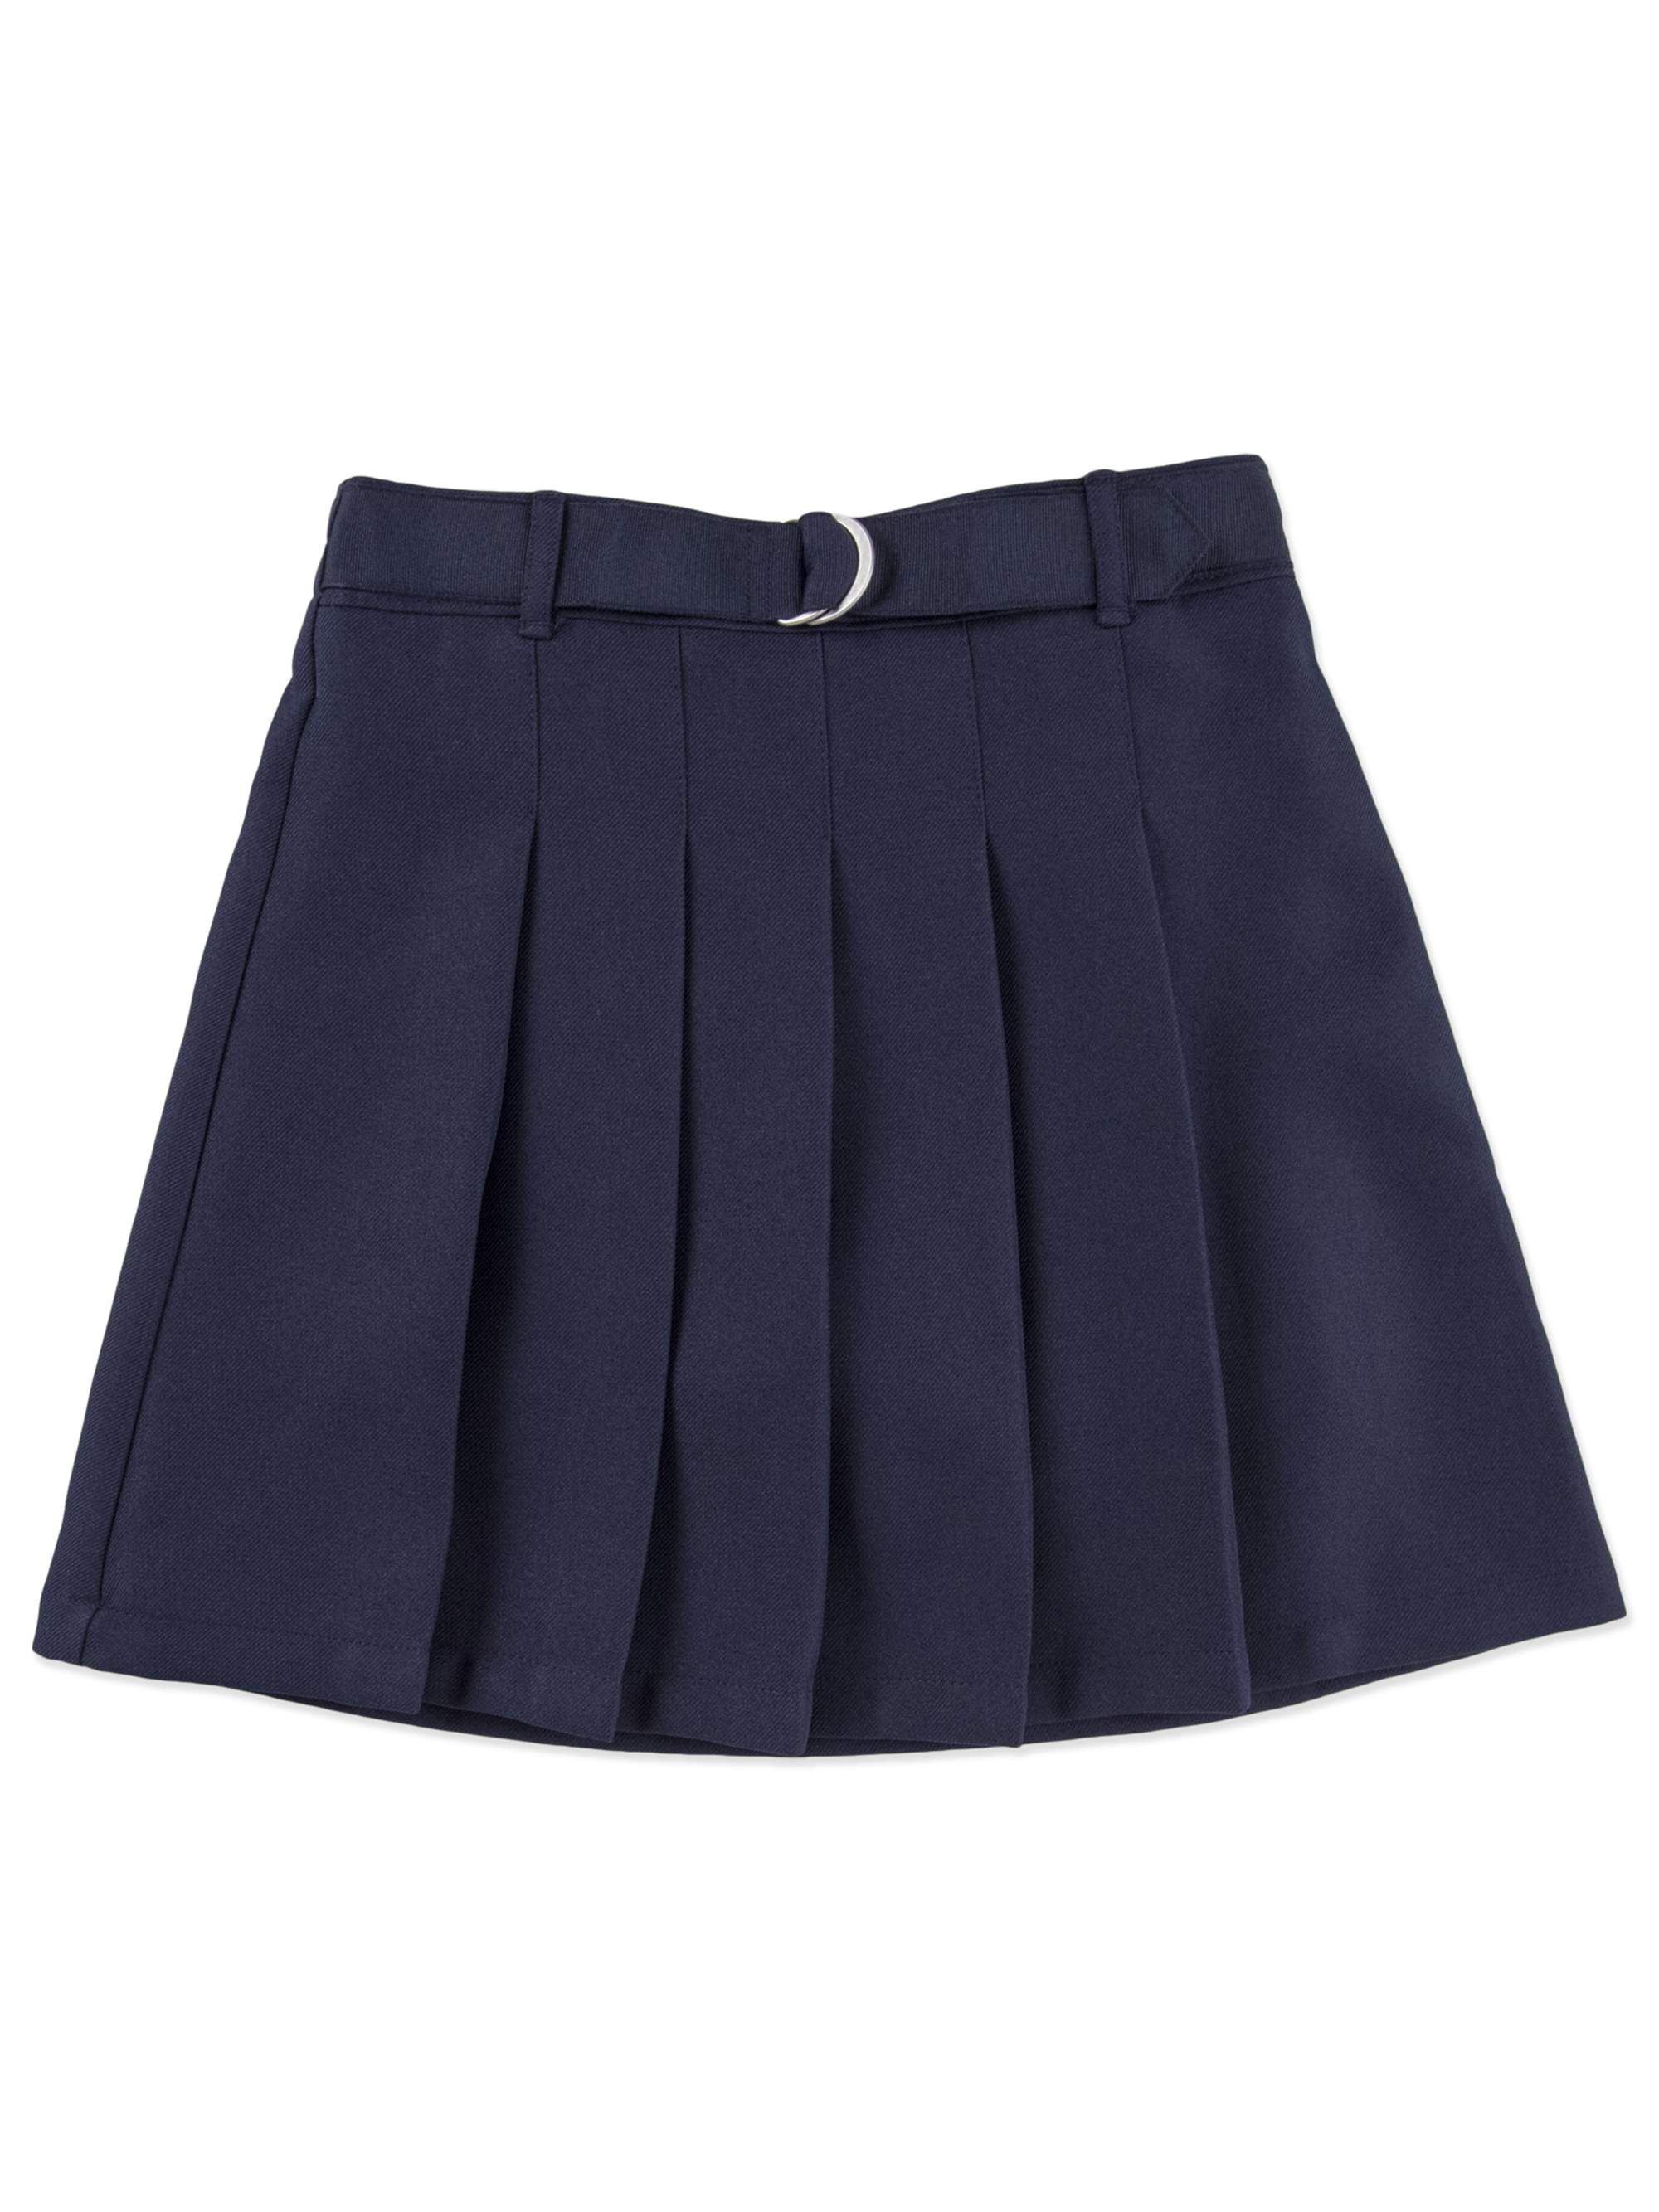 Girls' School Uniforms, Belted Pleated Scooter